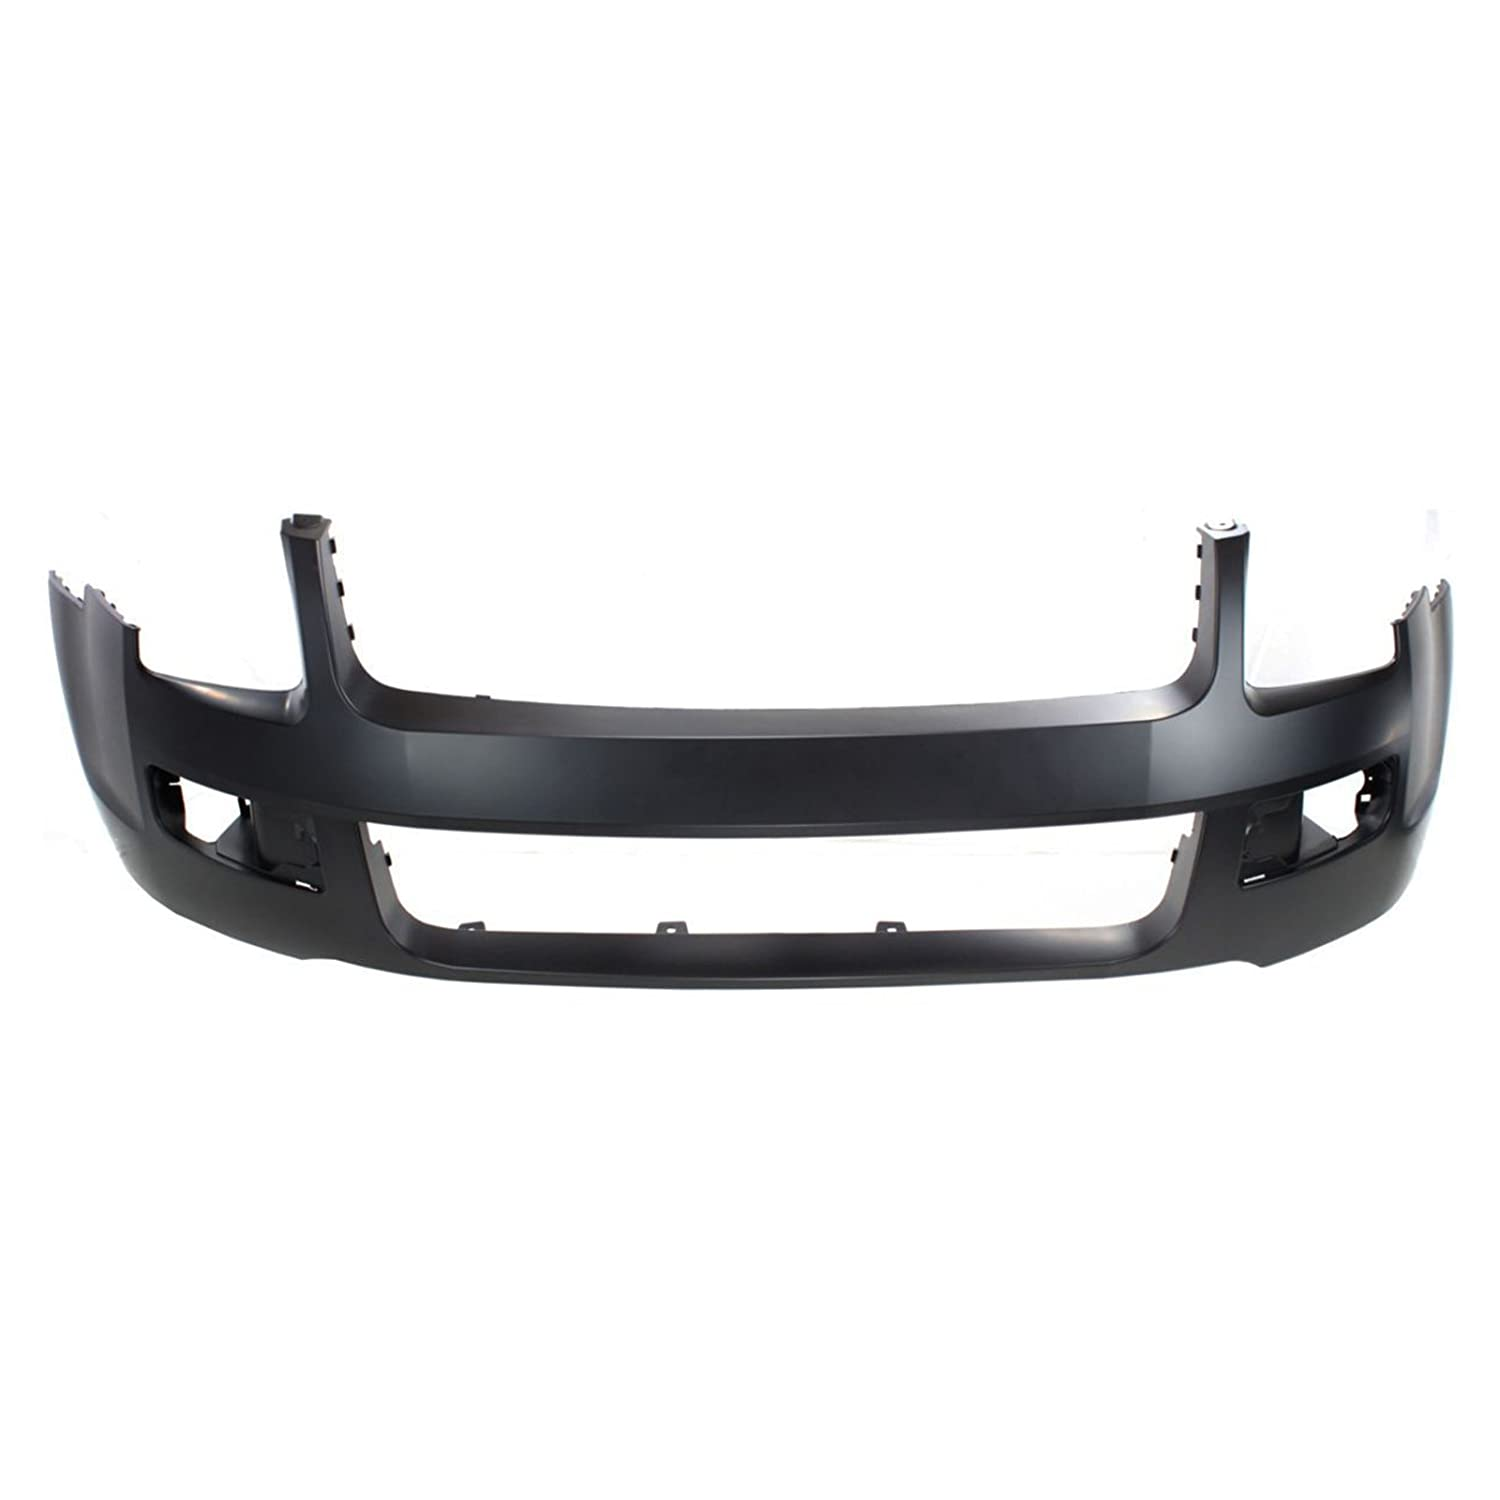 MBI AUTO - Painted to Match, Front Bumper Cover Fascia for 2006 2007 2009 Ford Fusion 06-09, FO1000596